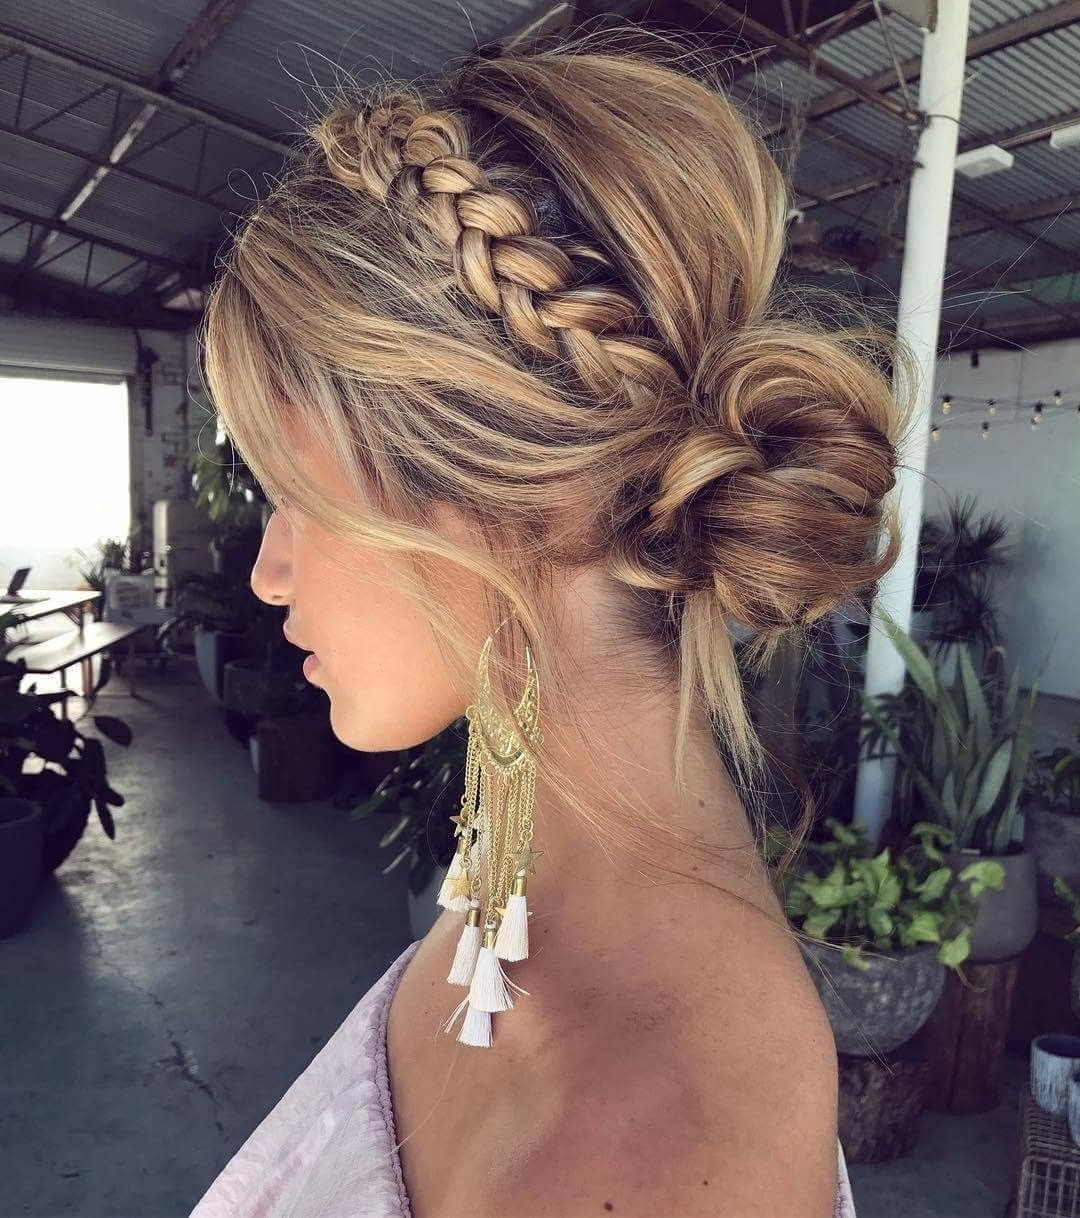 Hair Style, Makeup With 2017 Braided Hairstyles Up In One (View 6 of 15)